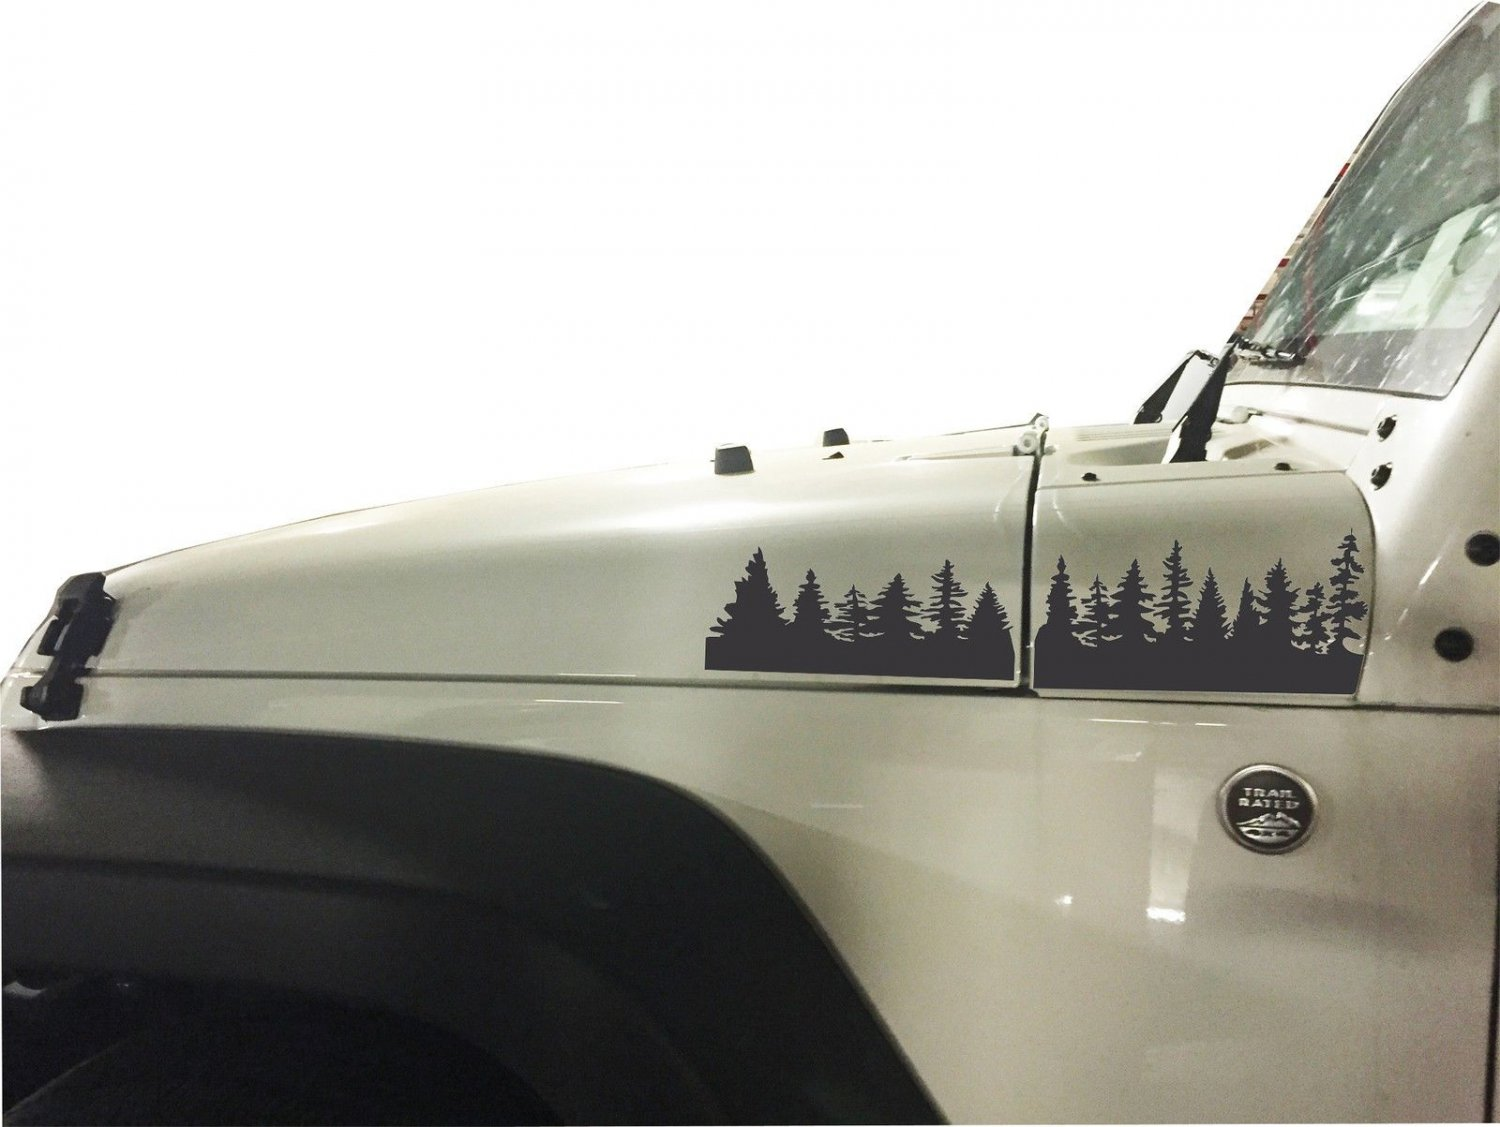 2 of Jeep JK Pine Tree extended Hood Decals Stickers Black color.